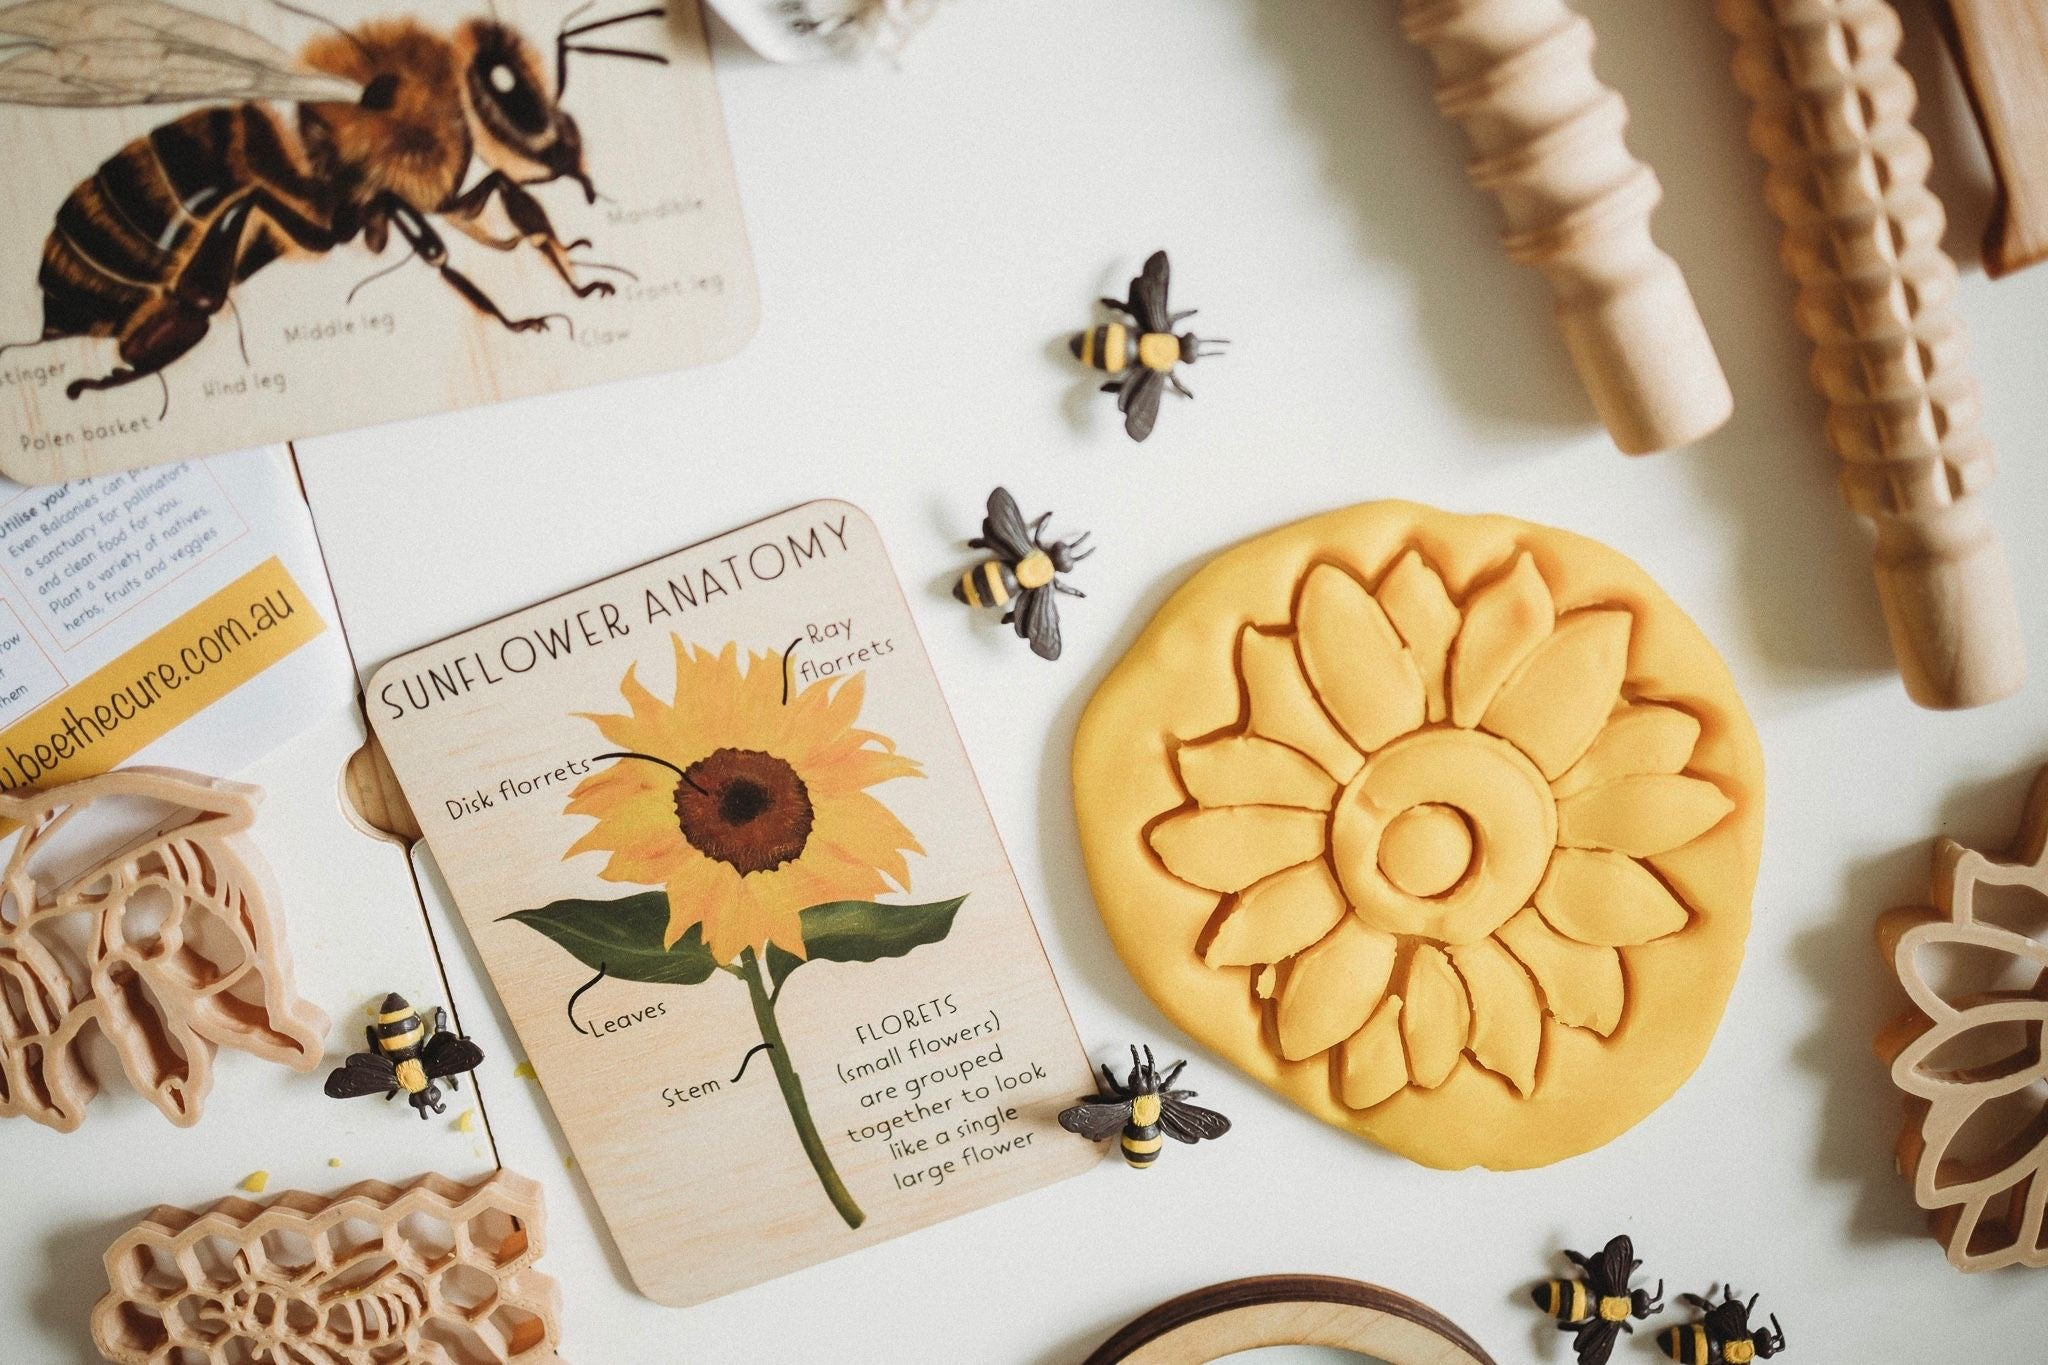 Wooden Sunflower Anatomy Tile + Matching Colouring In Card